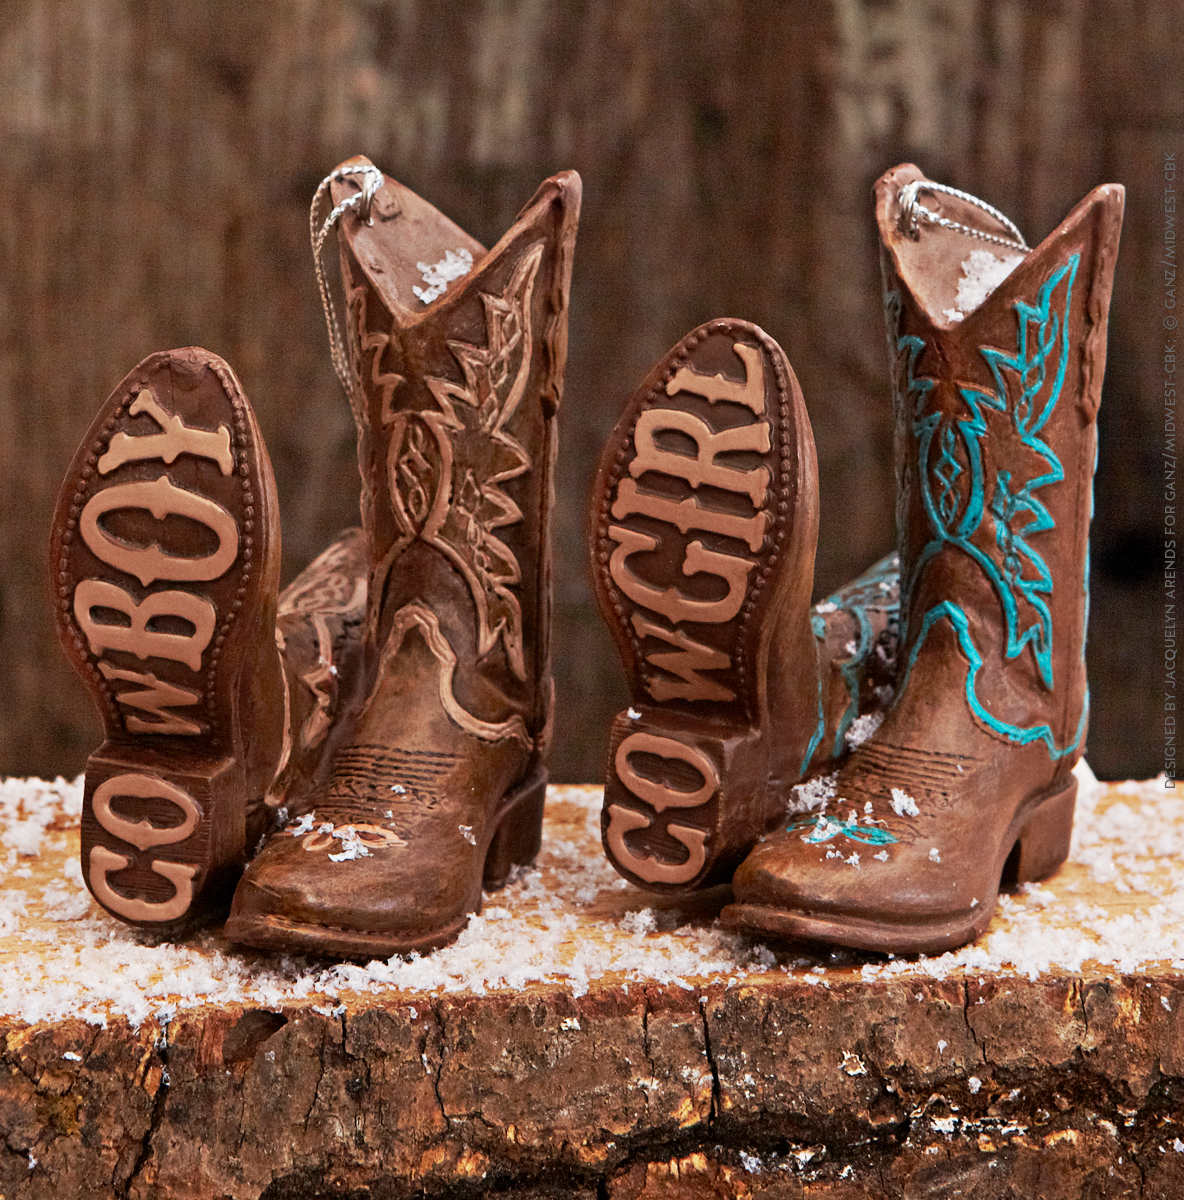 Styled shoot of Specialty Ornaments Western Boots ornaments designed by Jacquelyn Arends; © Ganz/Midwest-CBK 2019